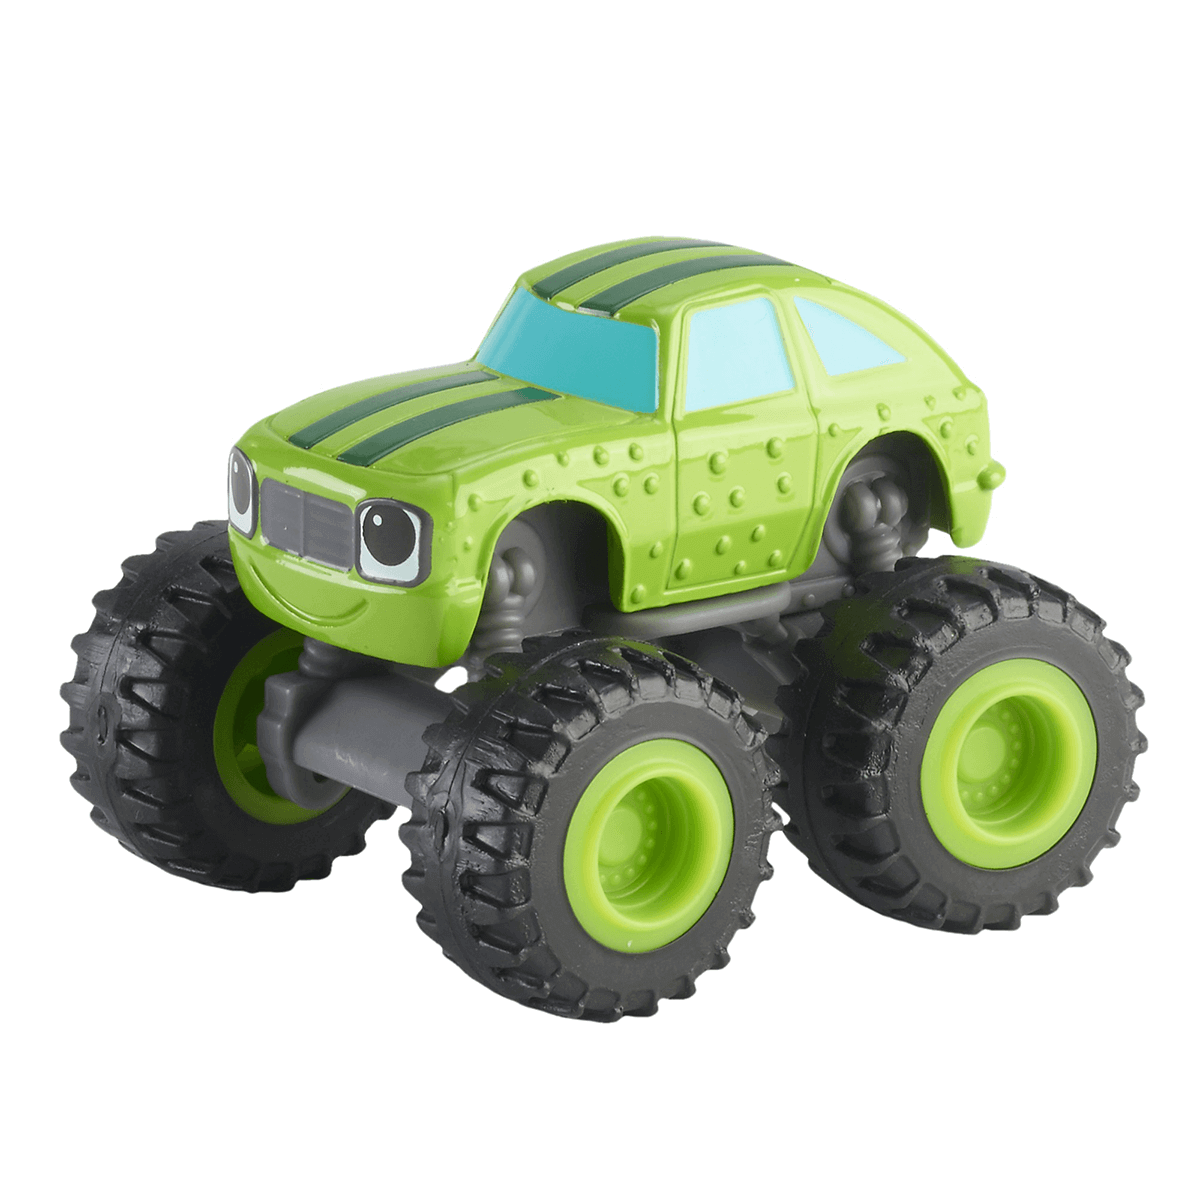 Fisher-Price Blaze and the Monster Machines Die Cast Vehicle - Pickle from Early Learning Center